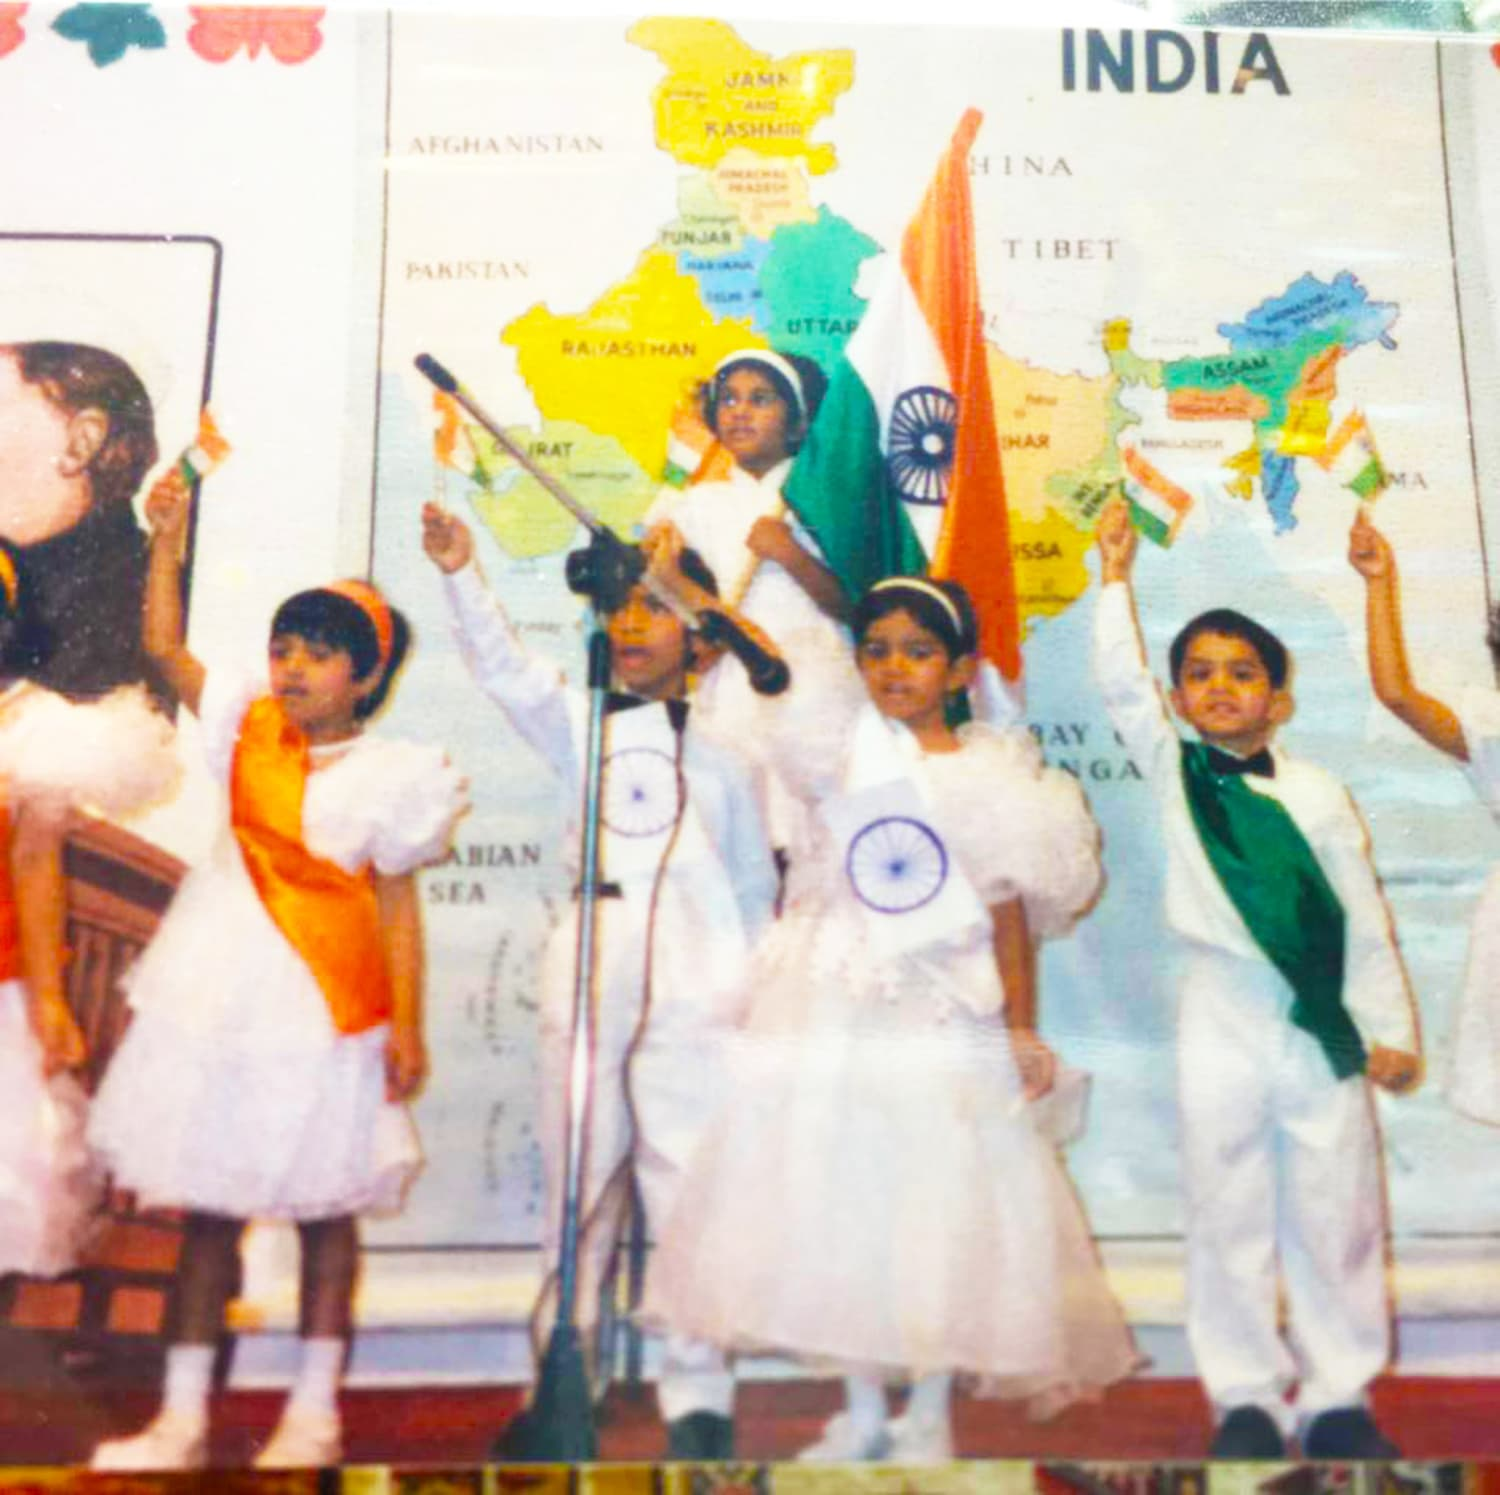 Me at the far right as a four-year-old, singing the Indian National Anthem at the Indian Embassy School in Jeddah, Saudi Arabia.